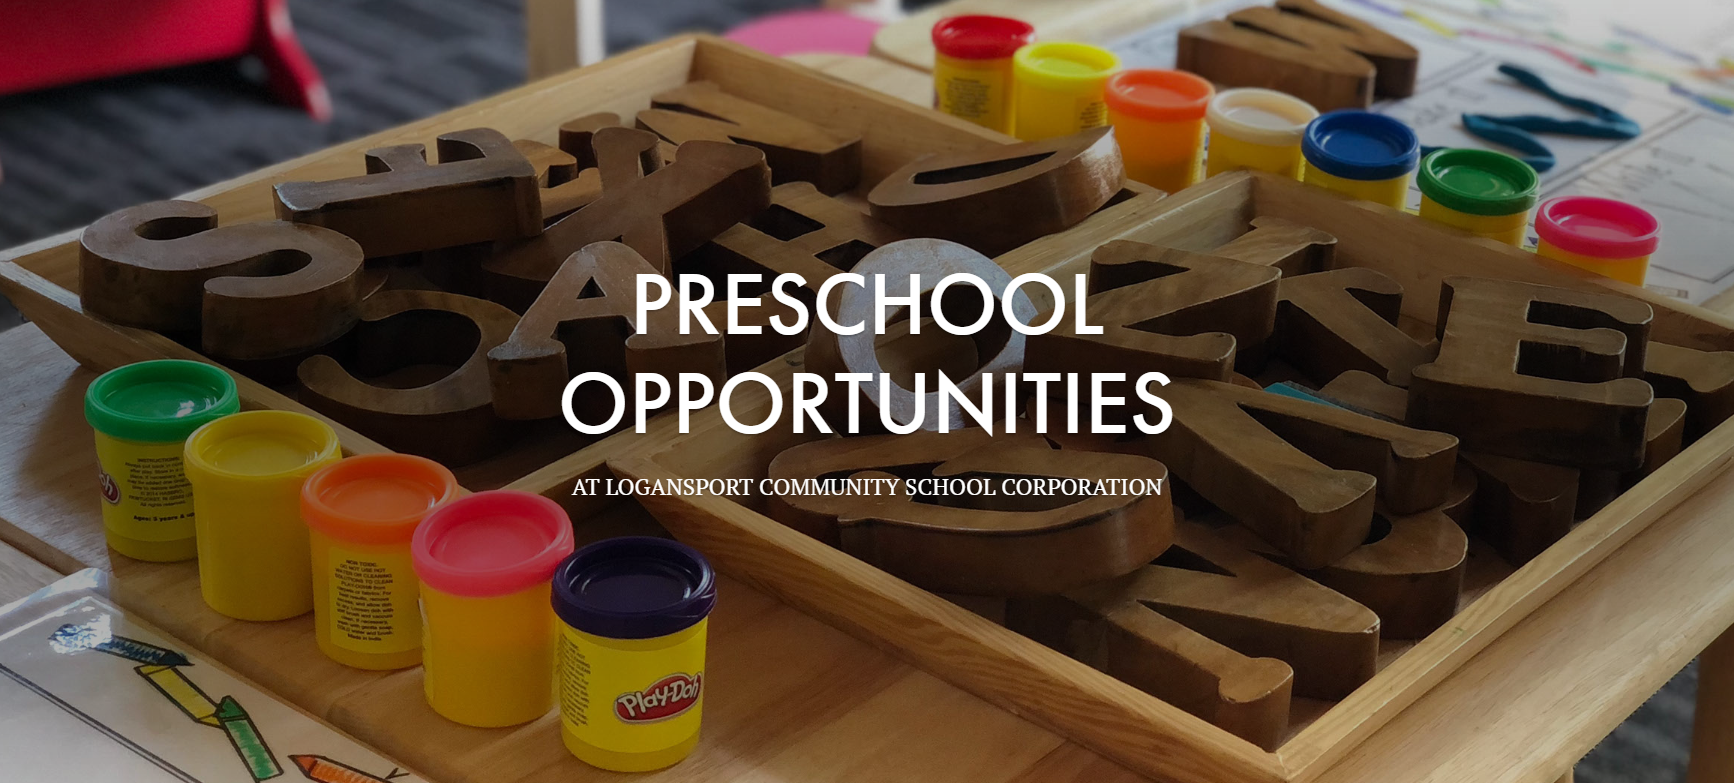 Preschool Opportunities at Logansport Community School Corp.